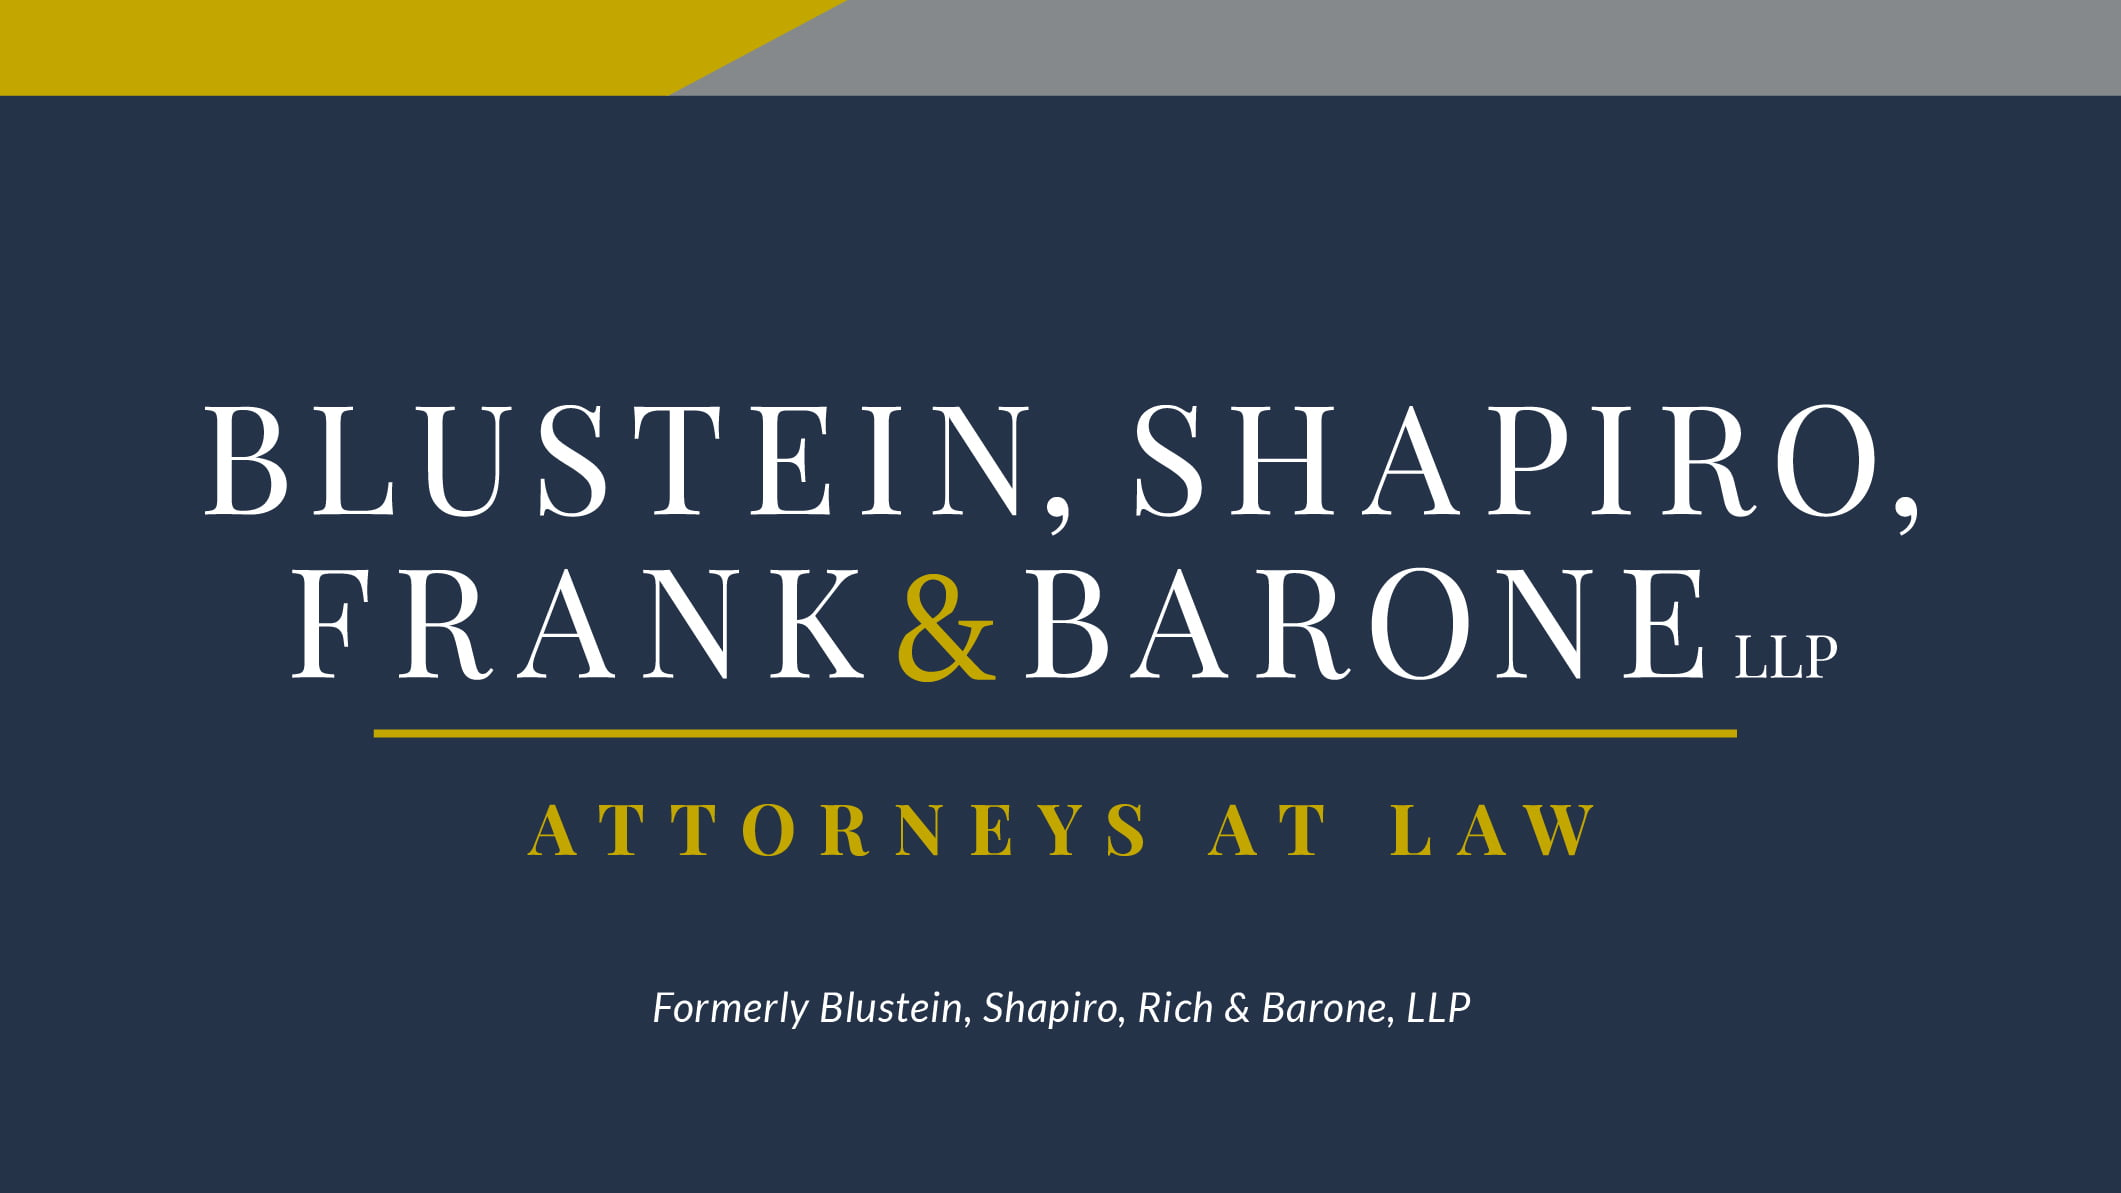 Hudson Valley Law Firm Blustein, Shapiro, Rich & Barone, LLP Announces New Name